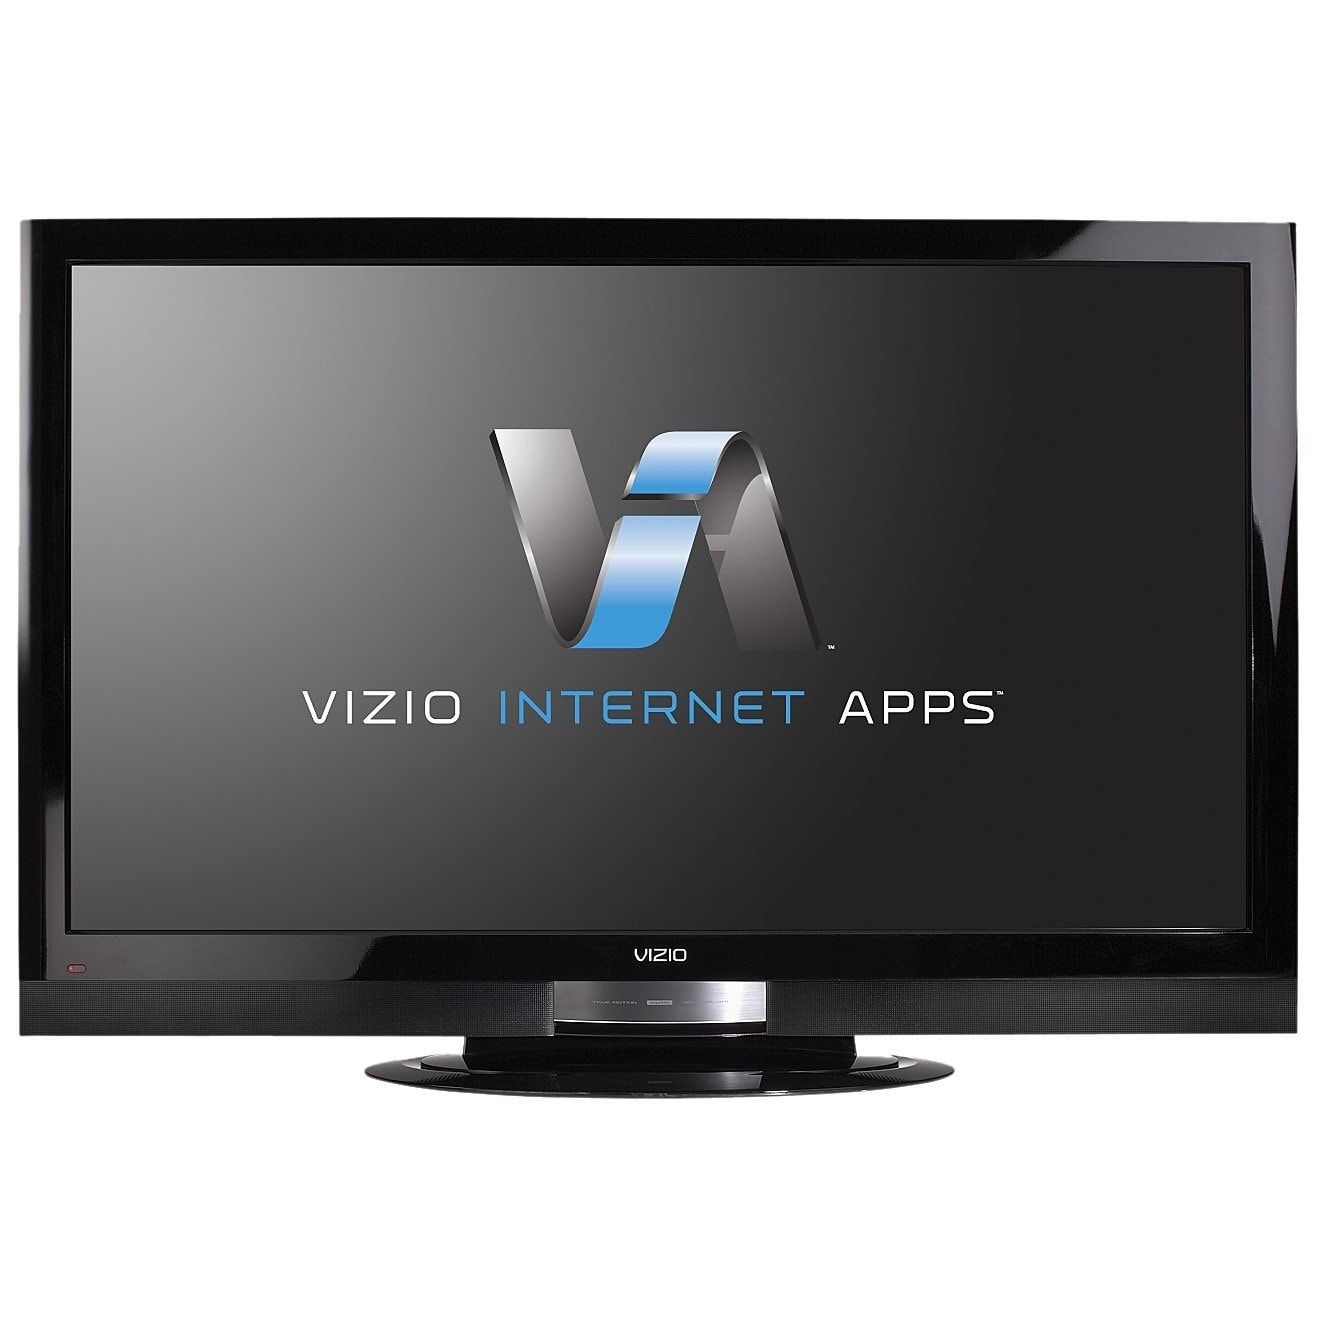 Shop Vizio Xvt423sv 42 Inch 1080p 240hz Led Tv